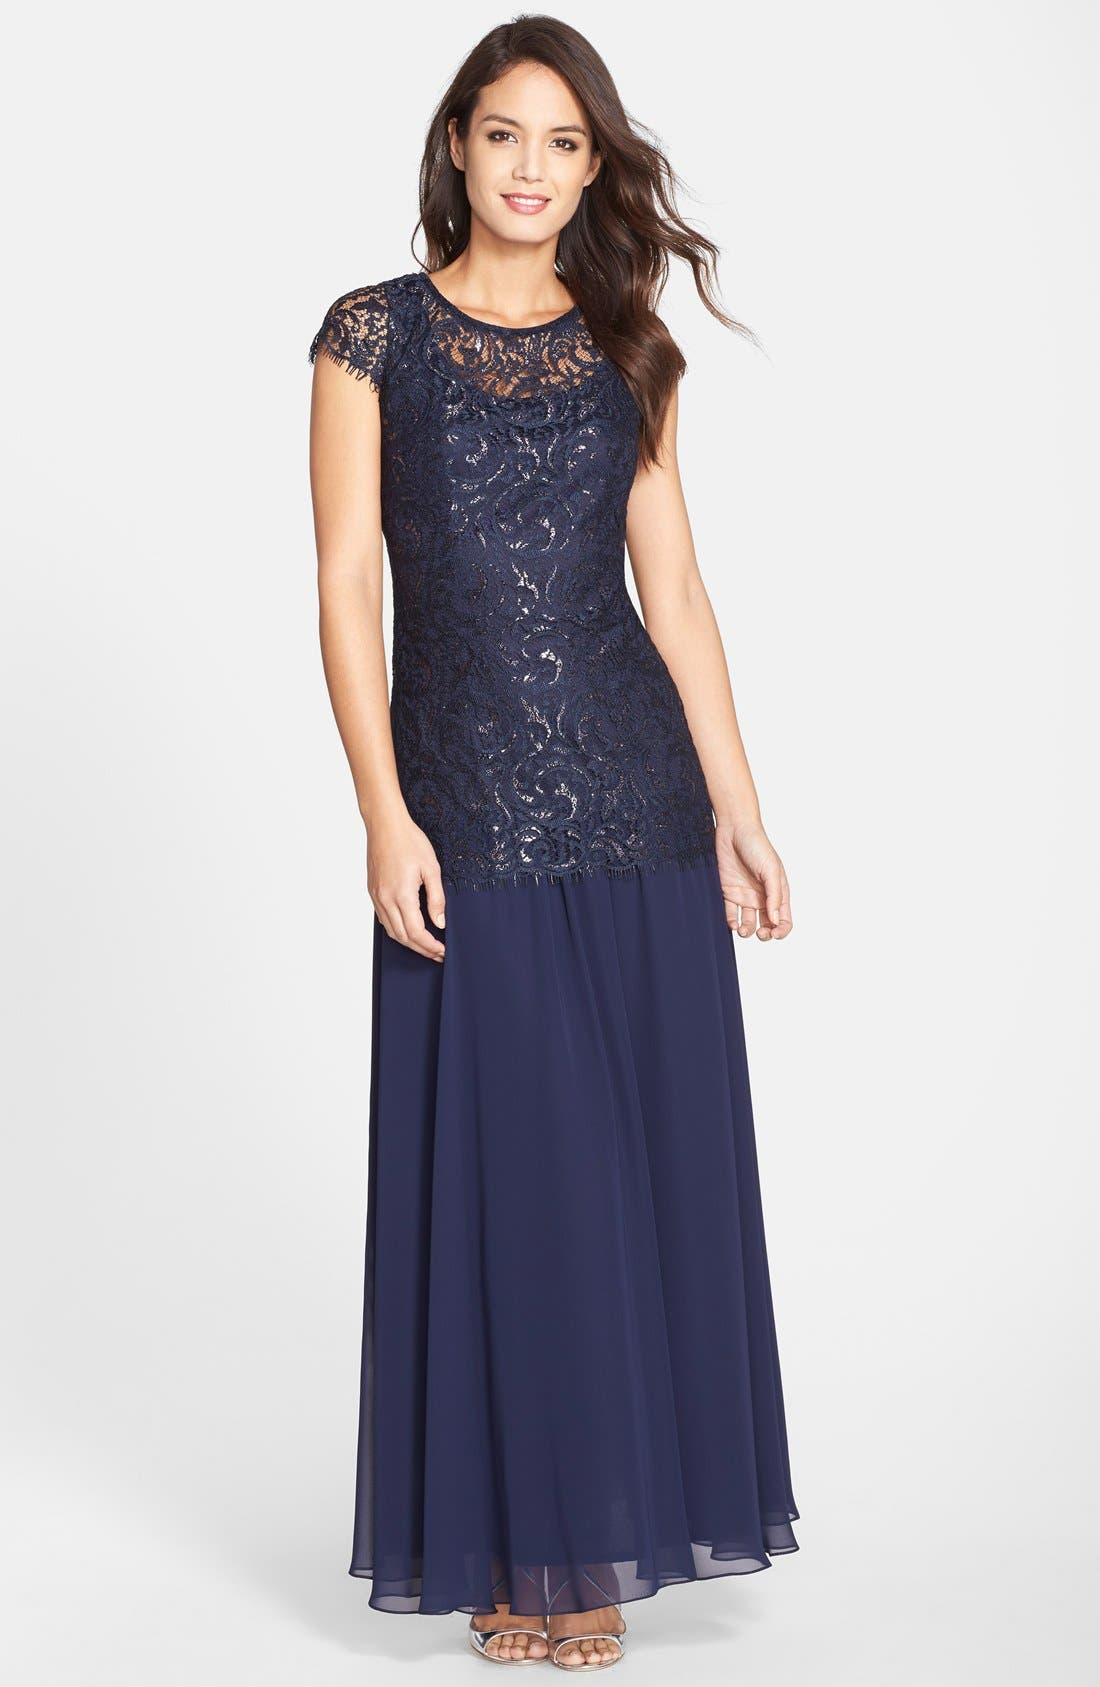 Alternate Image 1 Selected - Alex Evenings Metallic Lace & Chiffon Gown